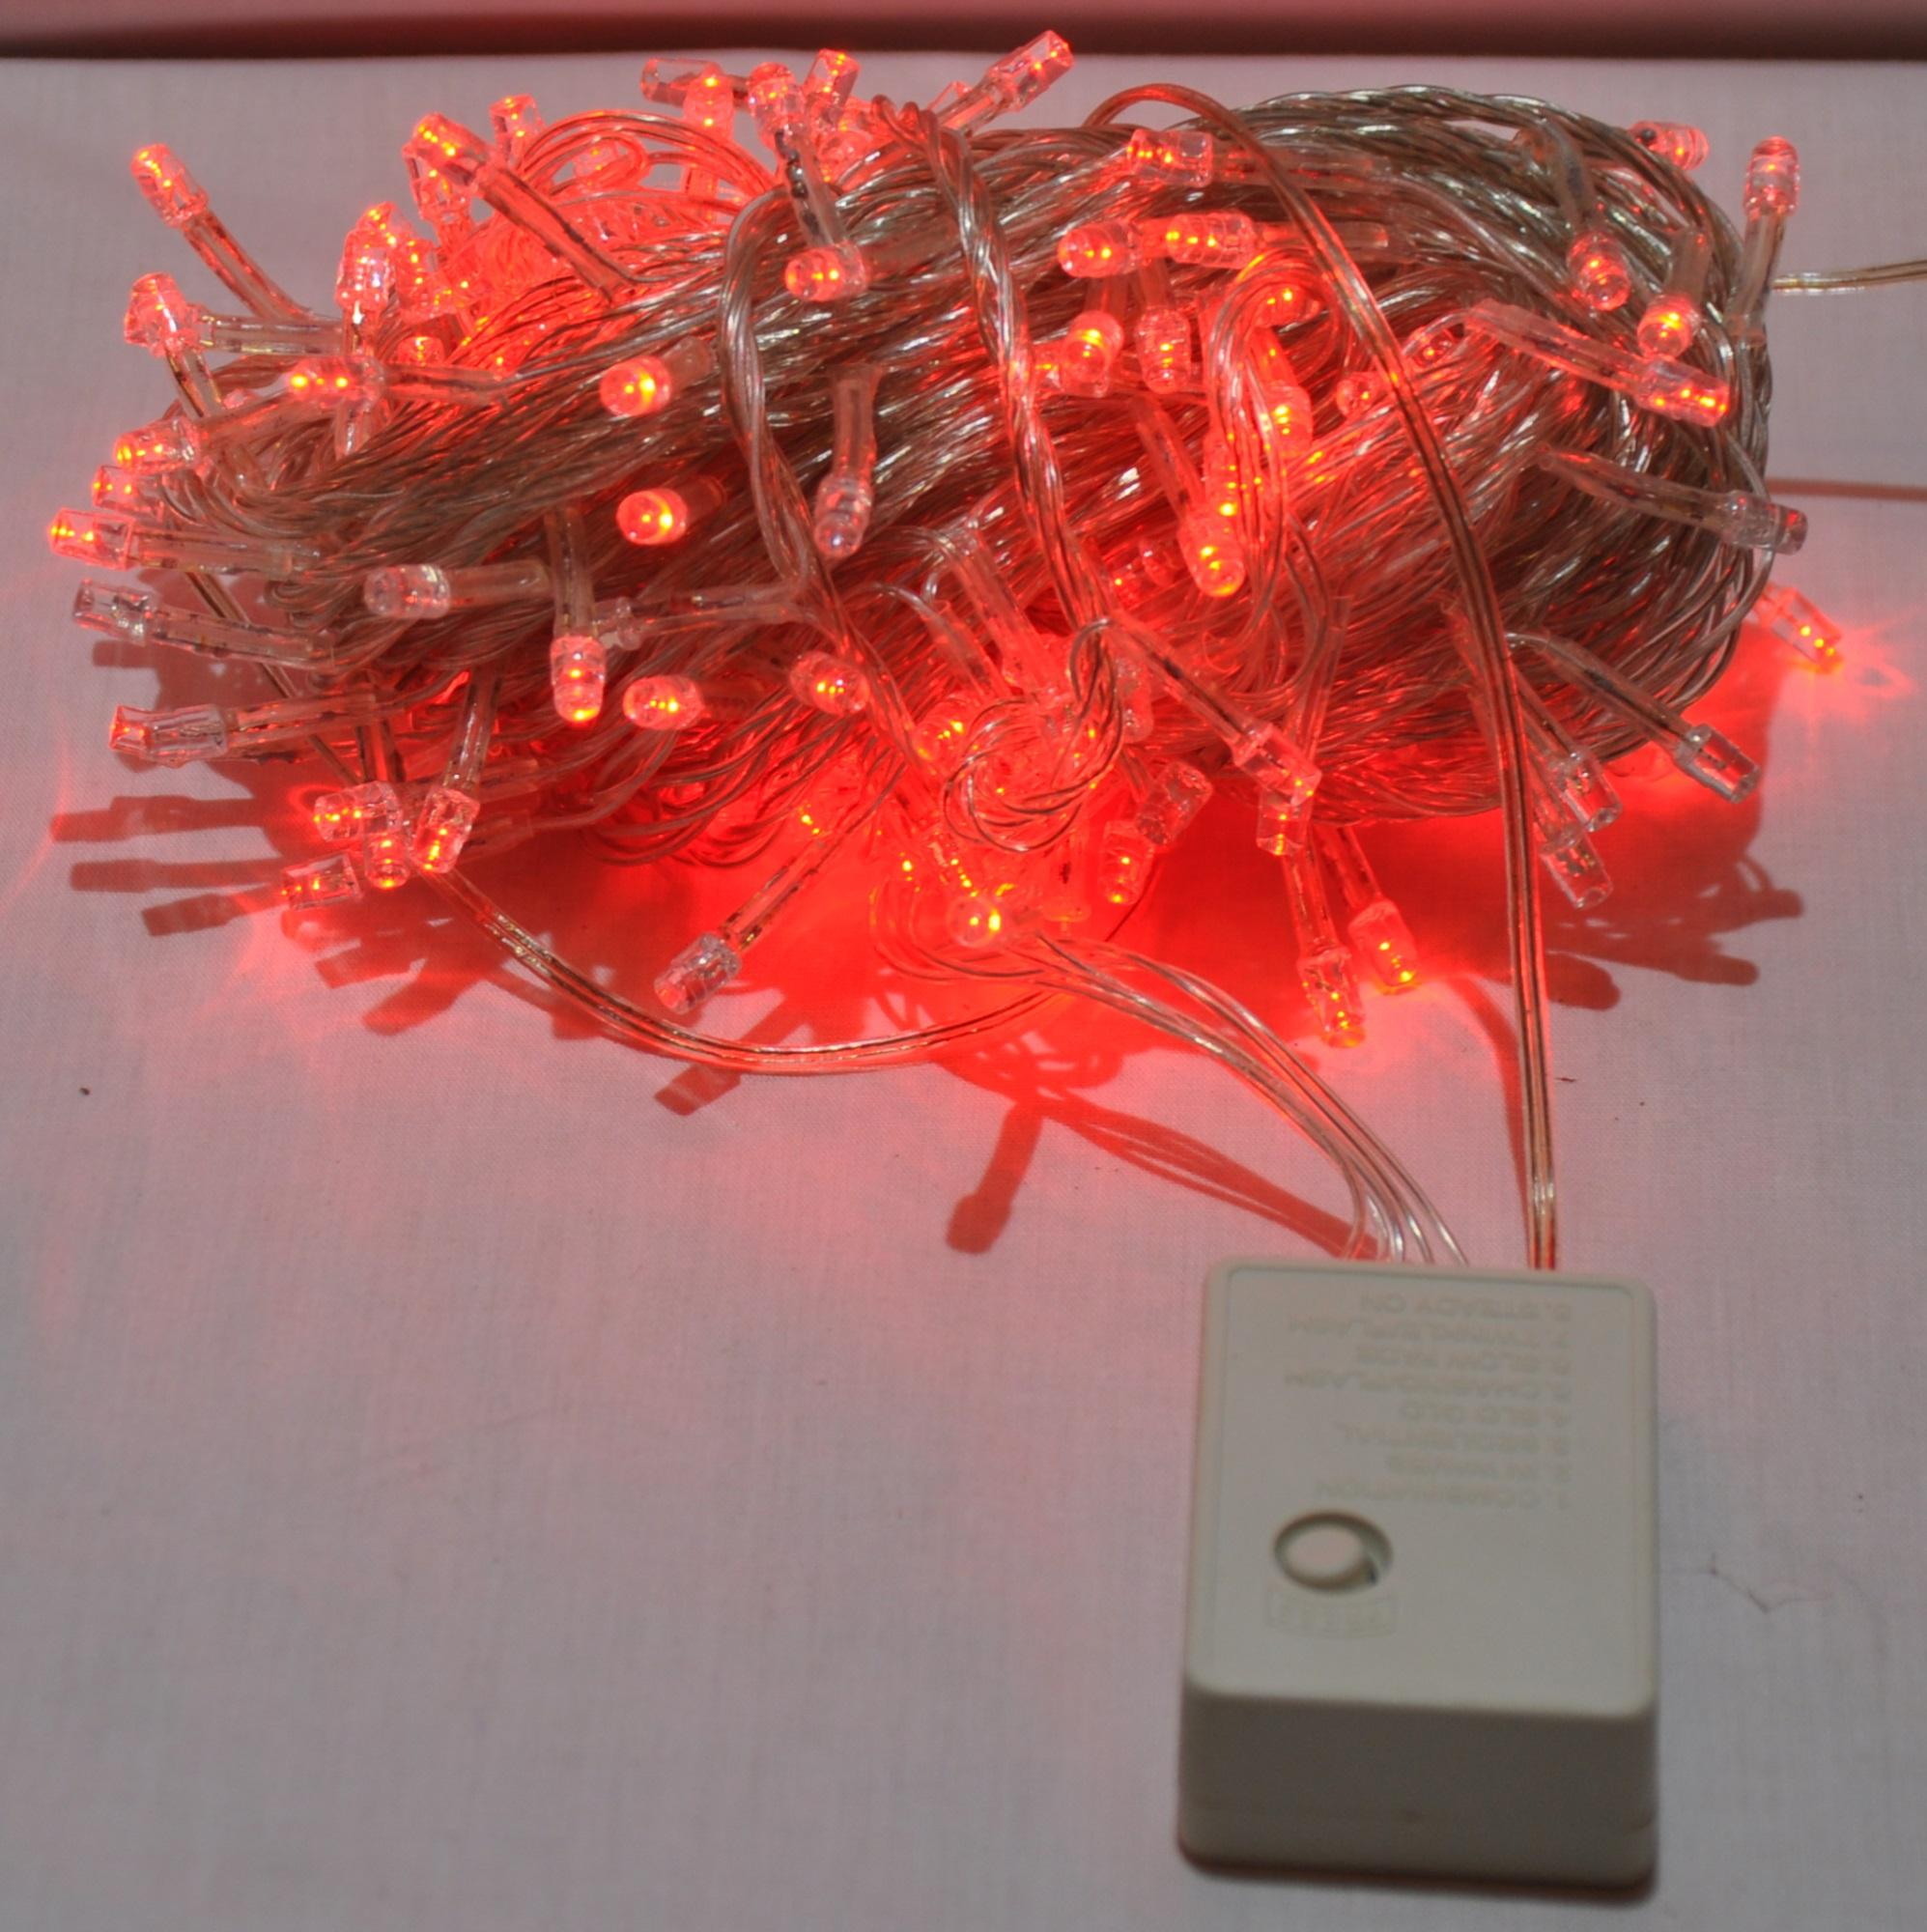 Lighting Effects For Sale Specialty Lights Prices Brands Review Wire Christmas Wiring Ebooks 200 Led Bulbs Red